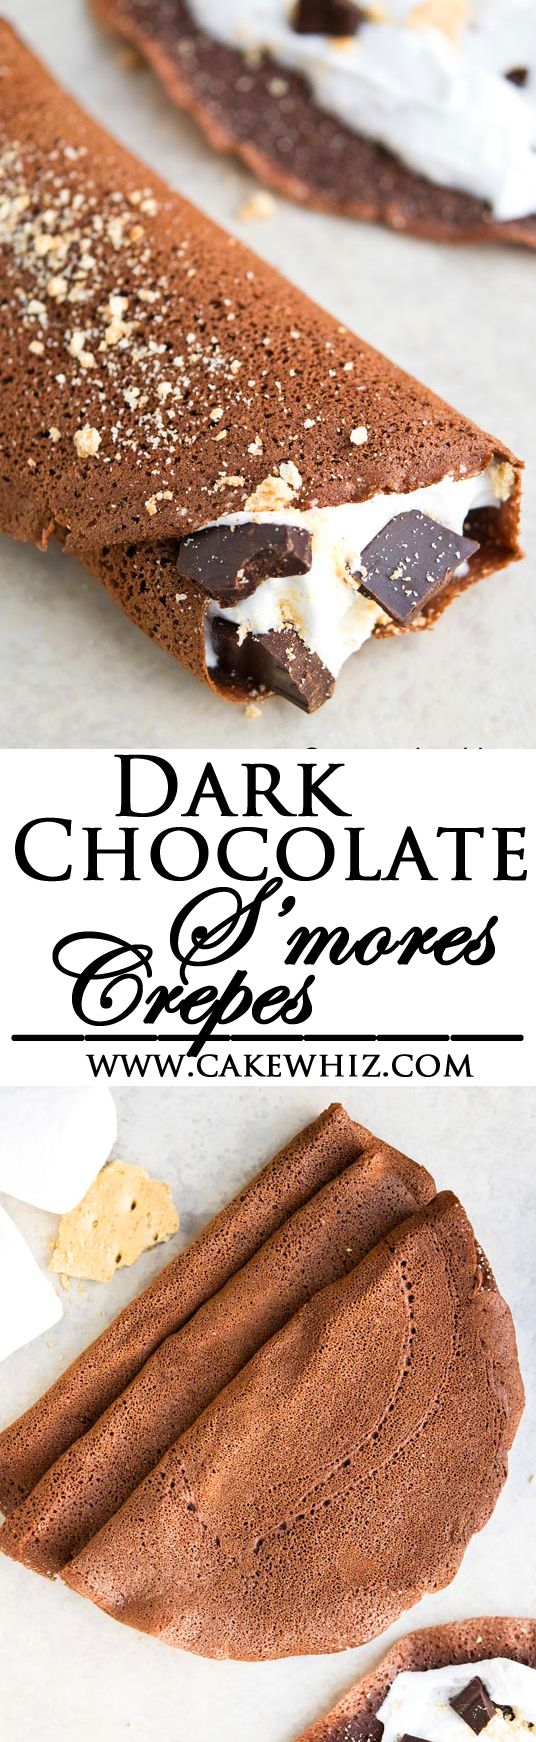 Easy S'MORES CREPES that are perfect for breakfast or brunch, especially in the Summer time! Thin chocolate crepes are filled with marshmallow fluff, graham crackers and chocolate chunks. From cakewhiz.com